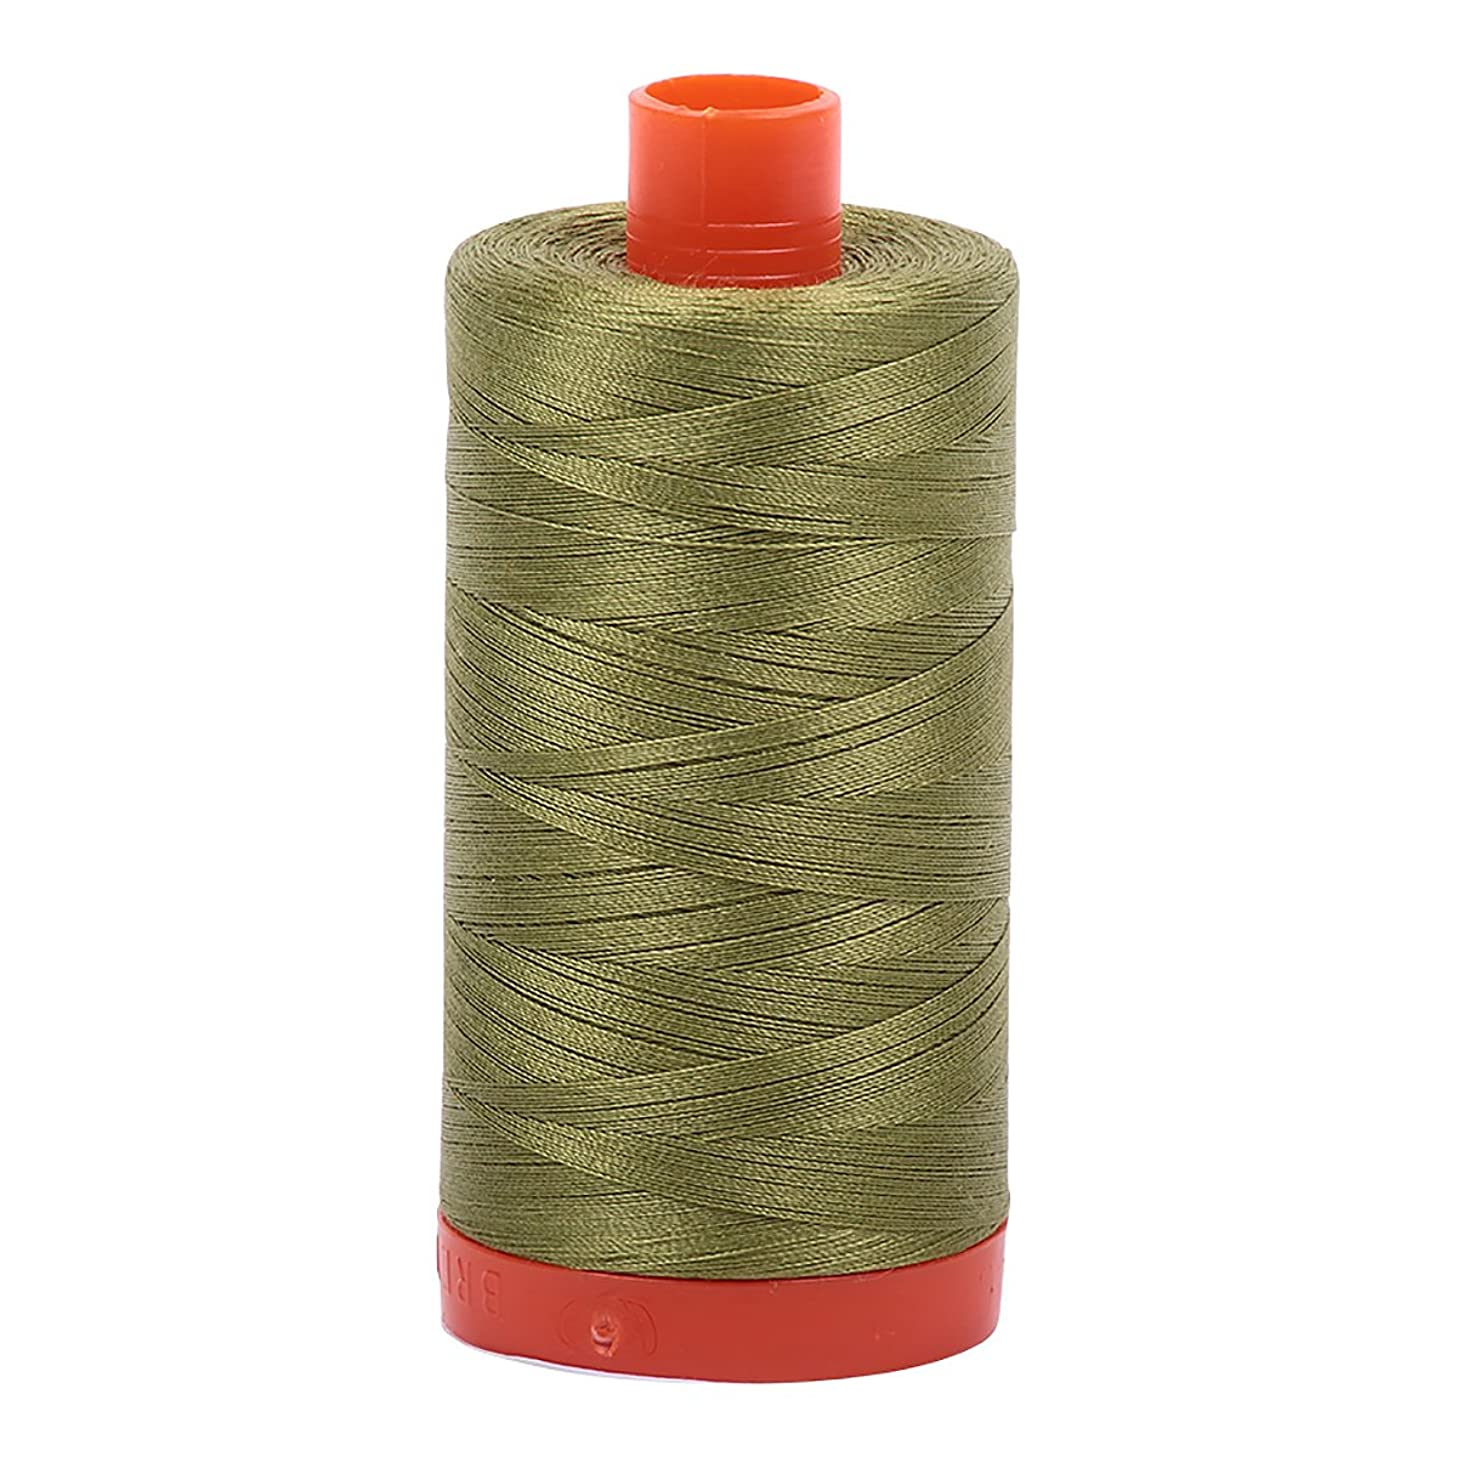 Aurifil Mako Cotton Thread Solid 50wt 1422yds Olive Green